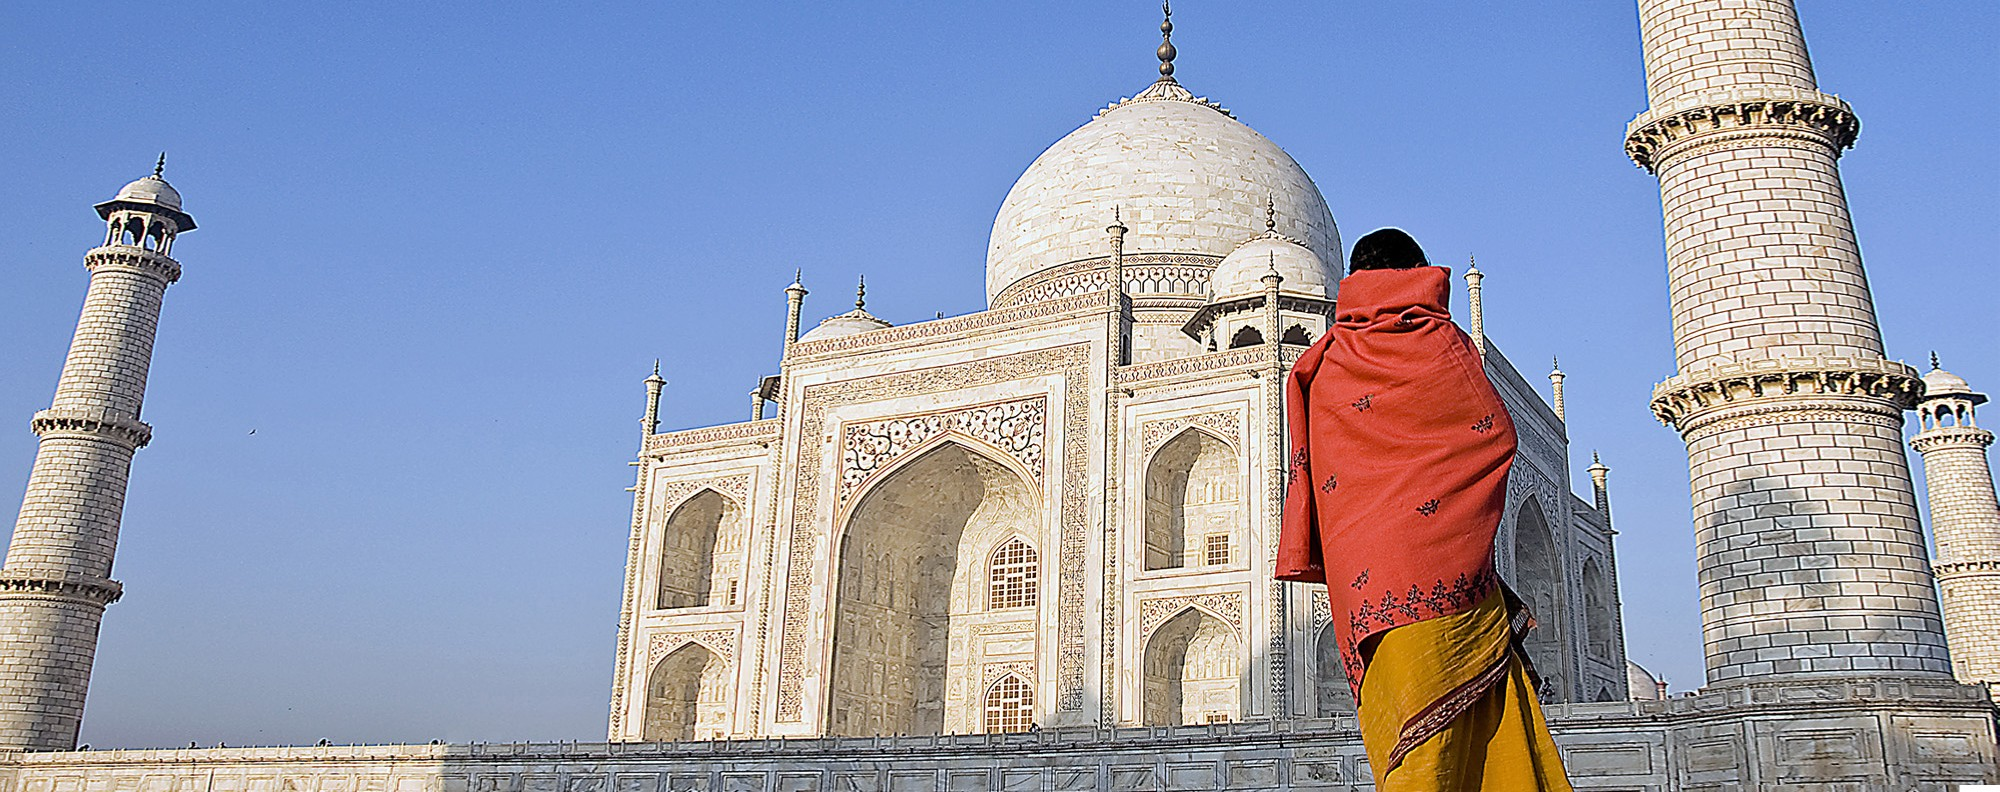 The Spectacular Taj Mahal of Agra